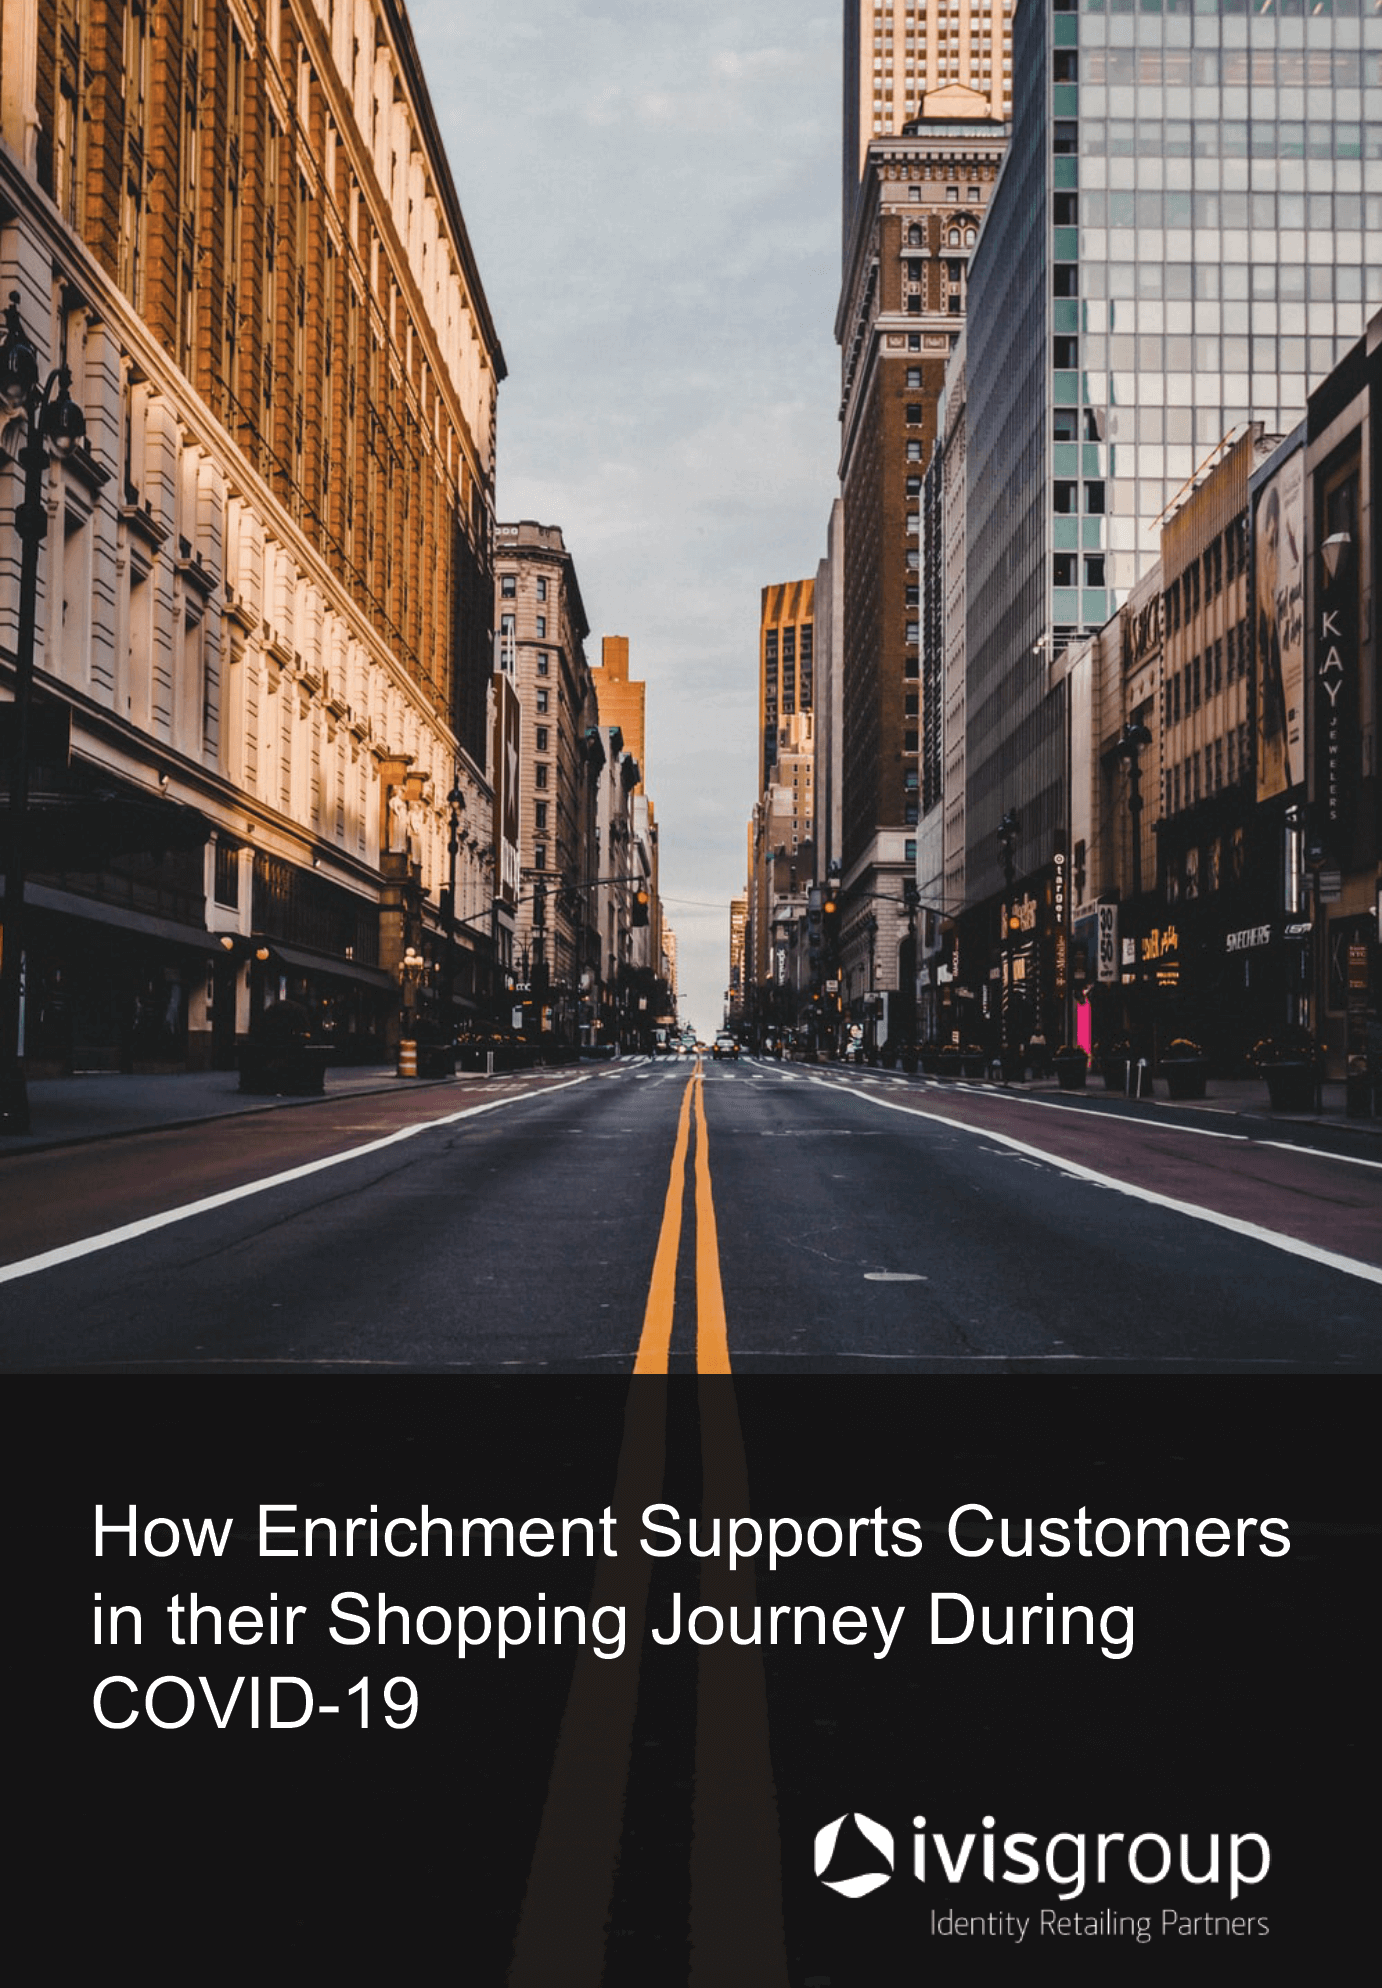 How Enrichment Supports Customers in their Shopping Journey During COVID-19